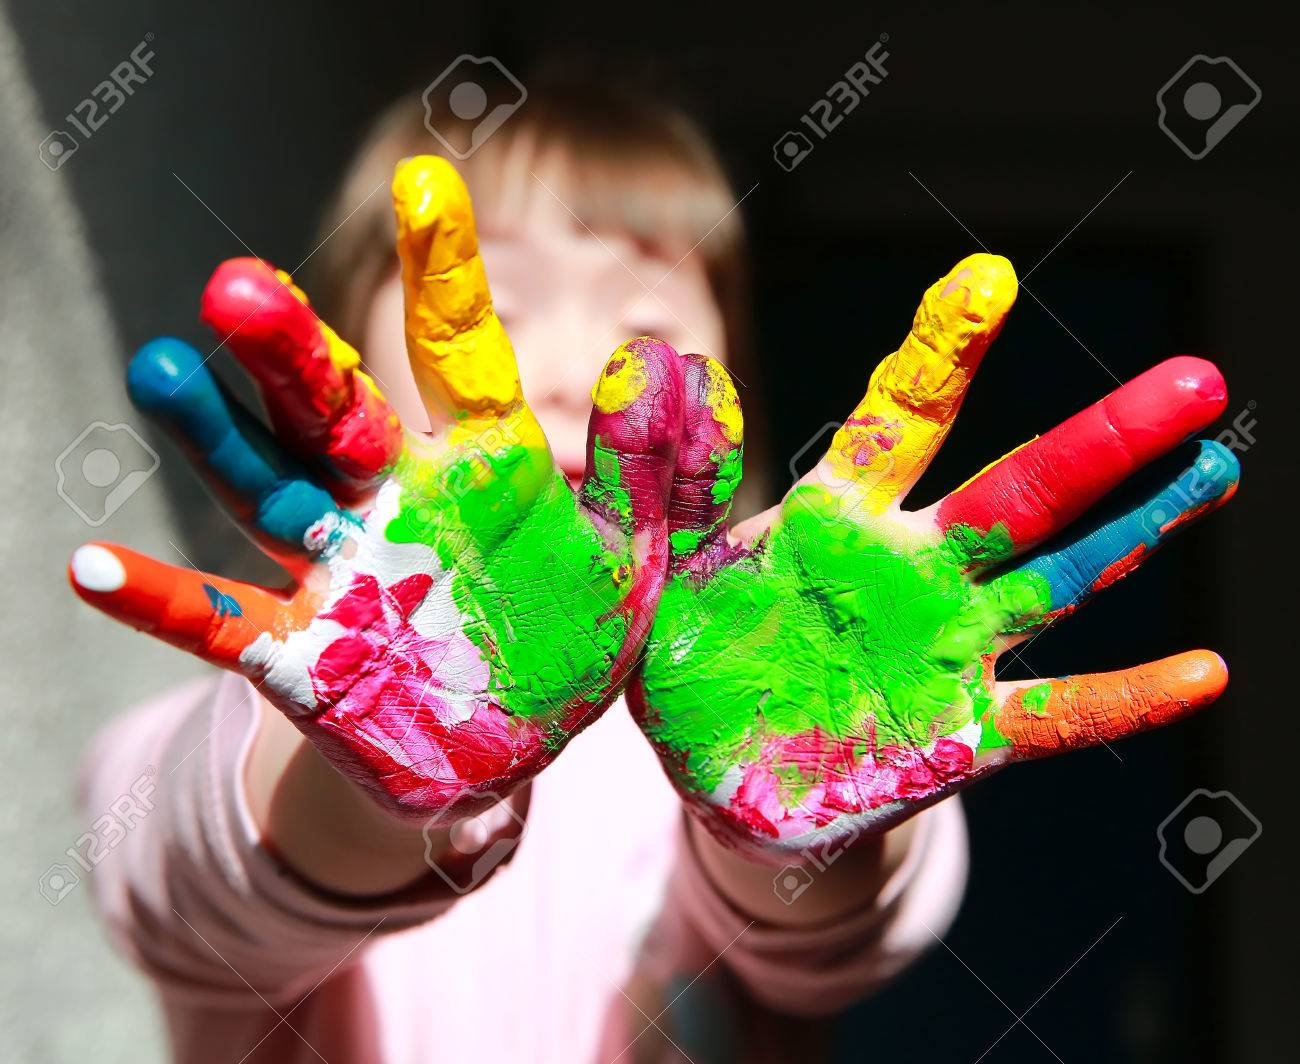 Cute little kid with painted hands - 63018501